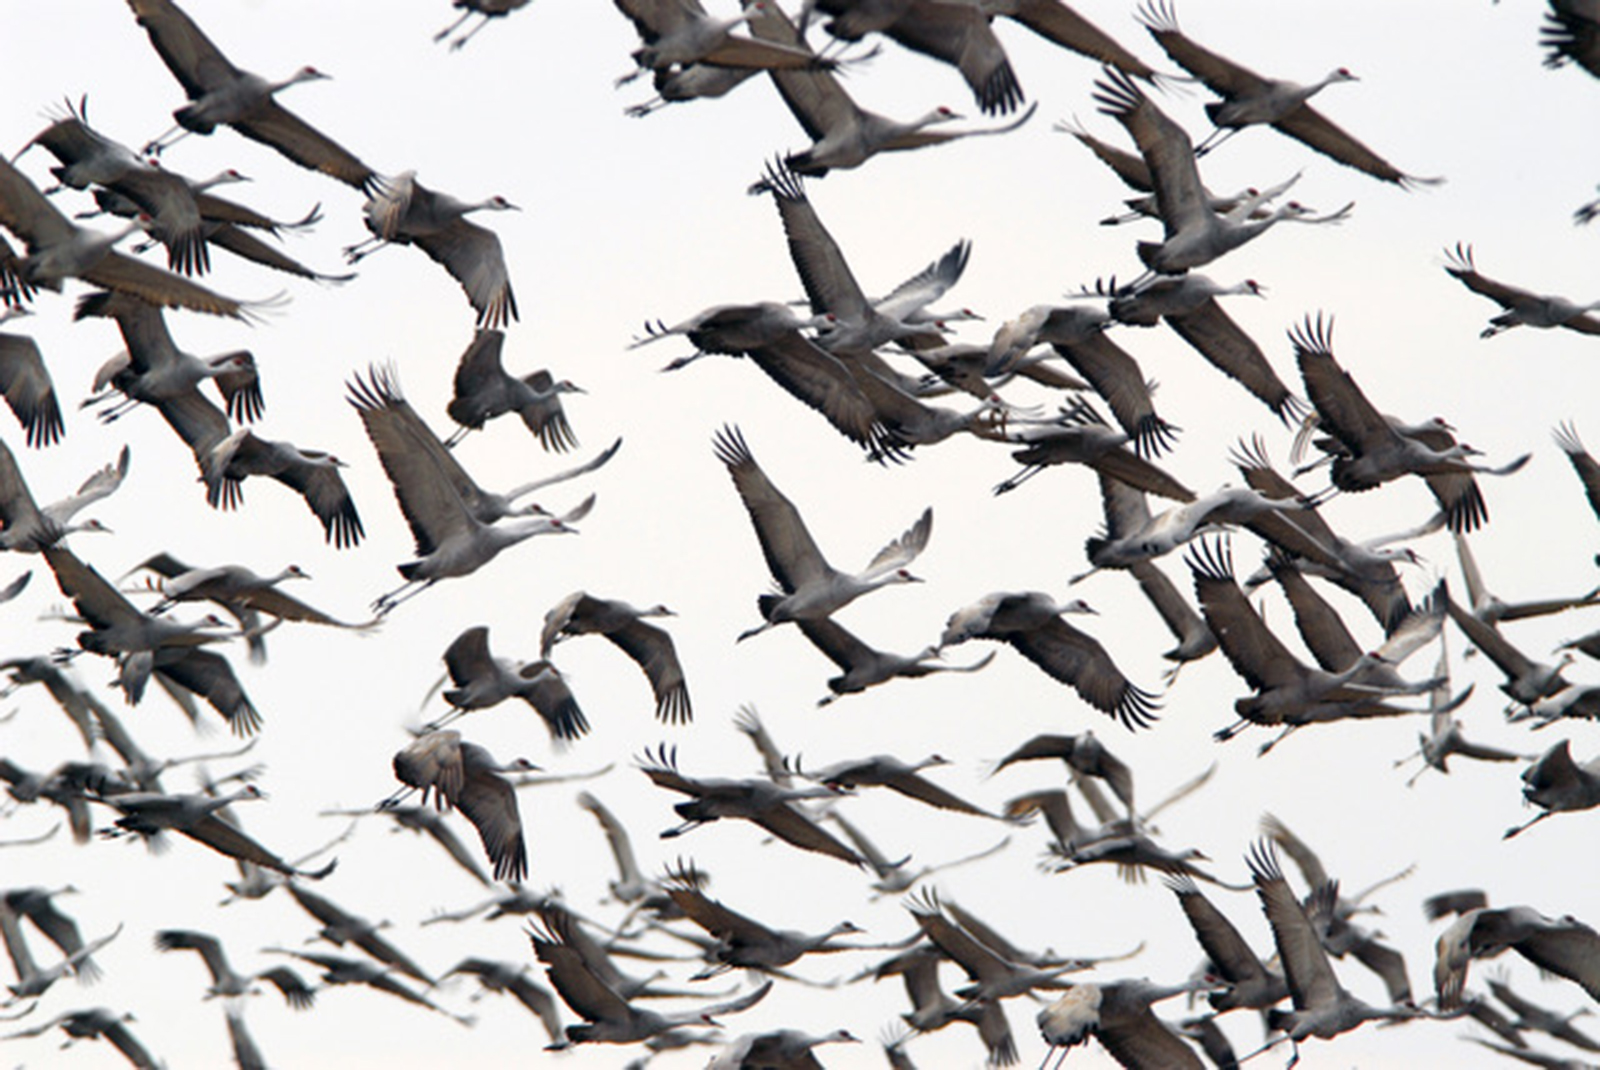 A 'dance' of sandhill cranes.